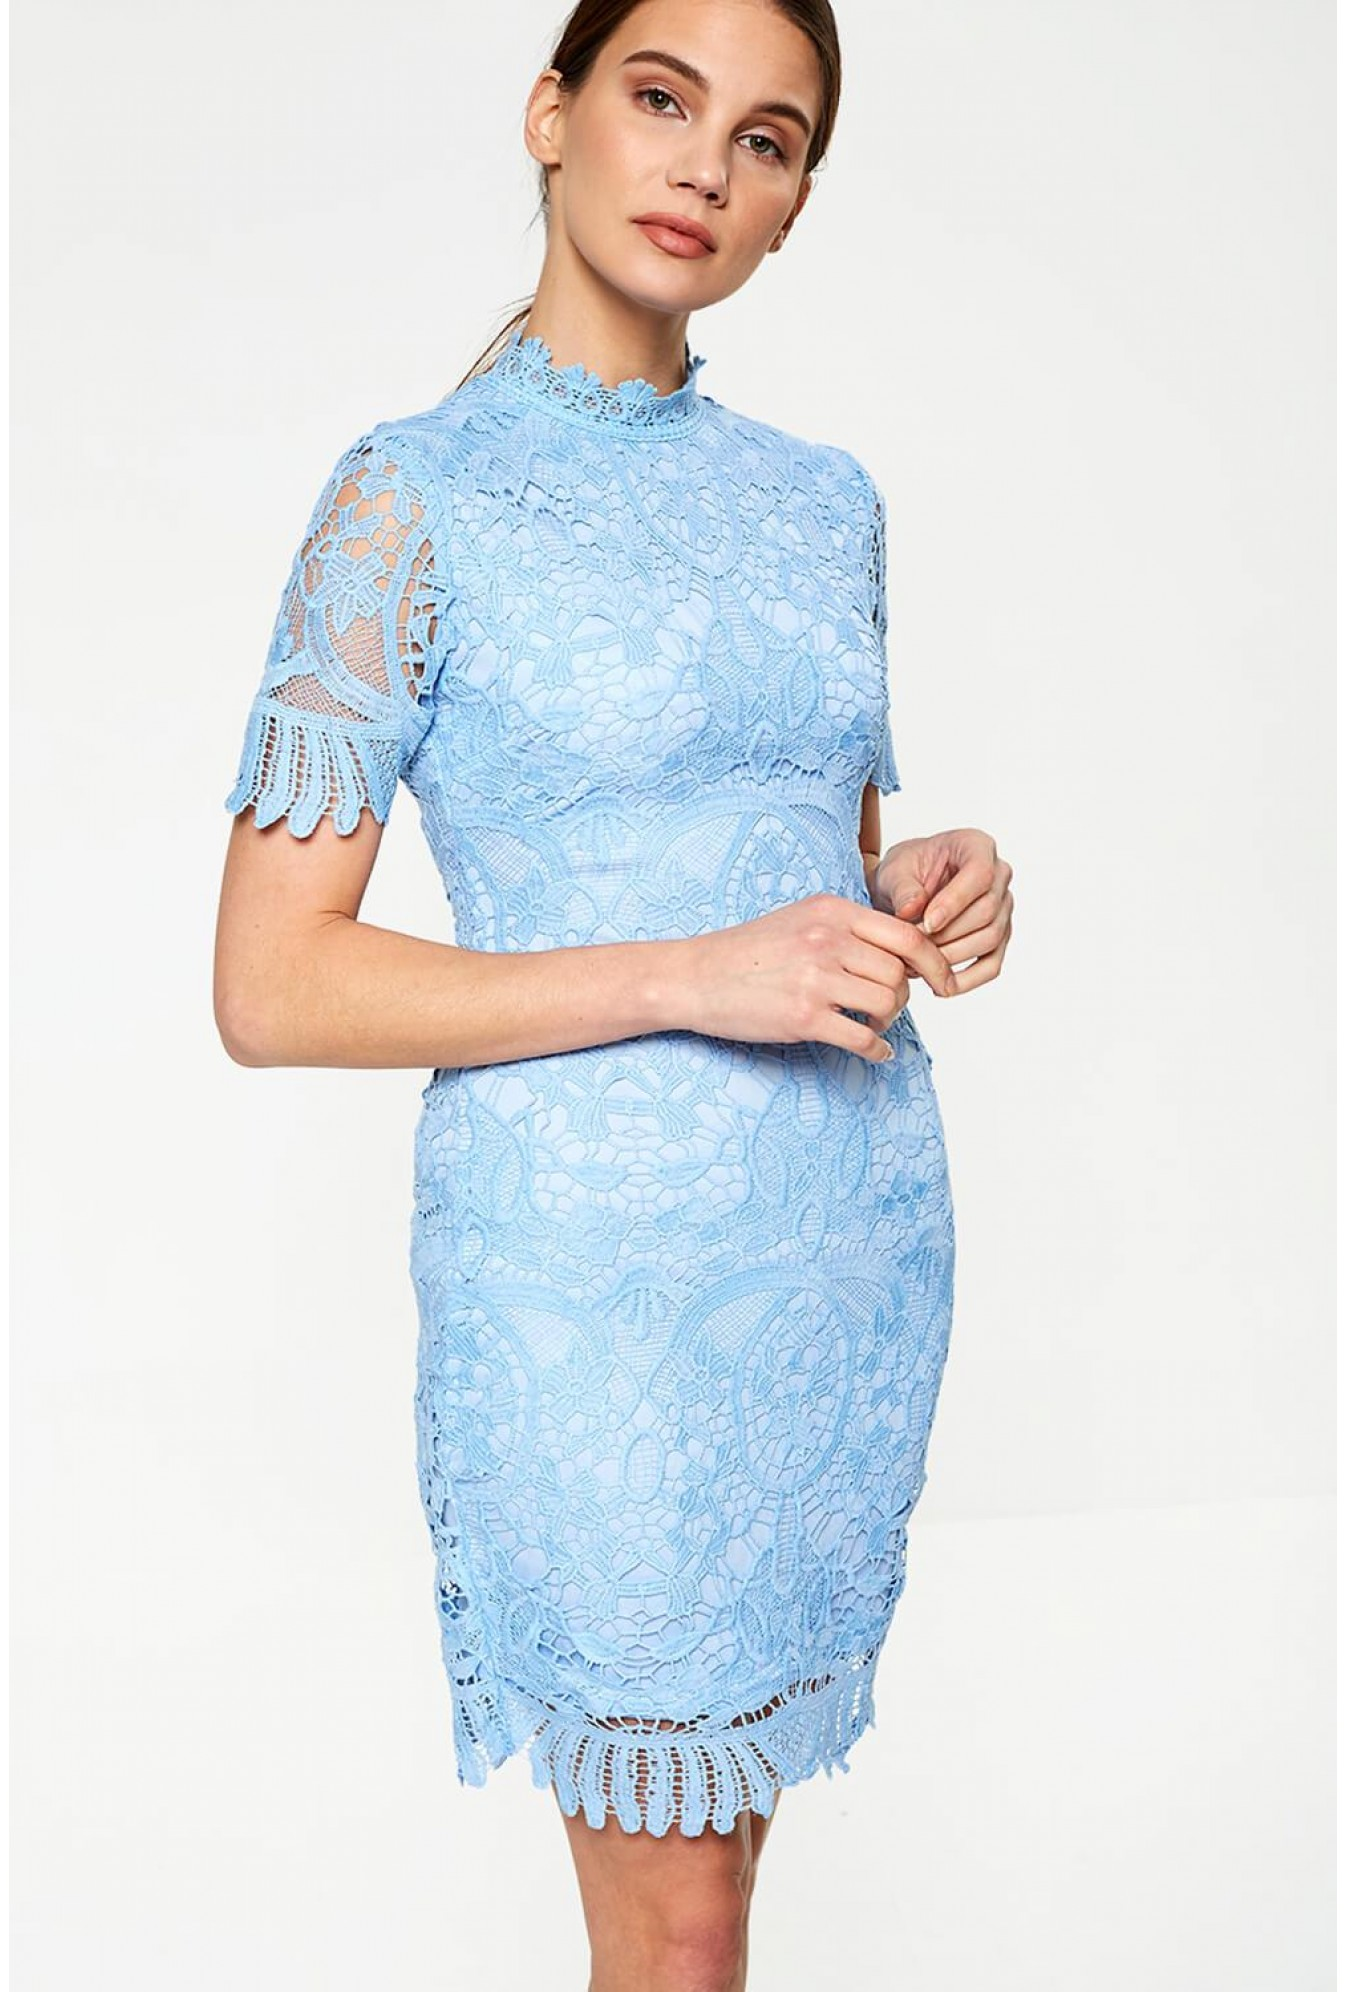 Pixie Daisy Diana Crochet Overlay Midi Dress In Baby Blue Iclothing